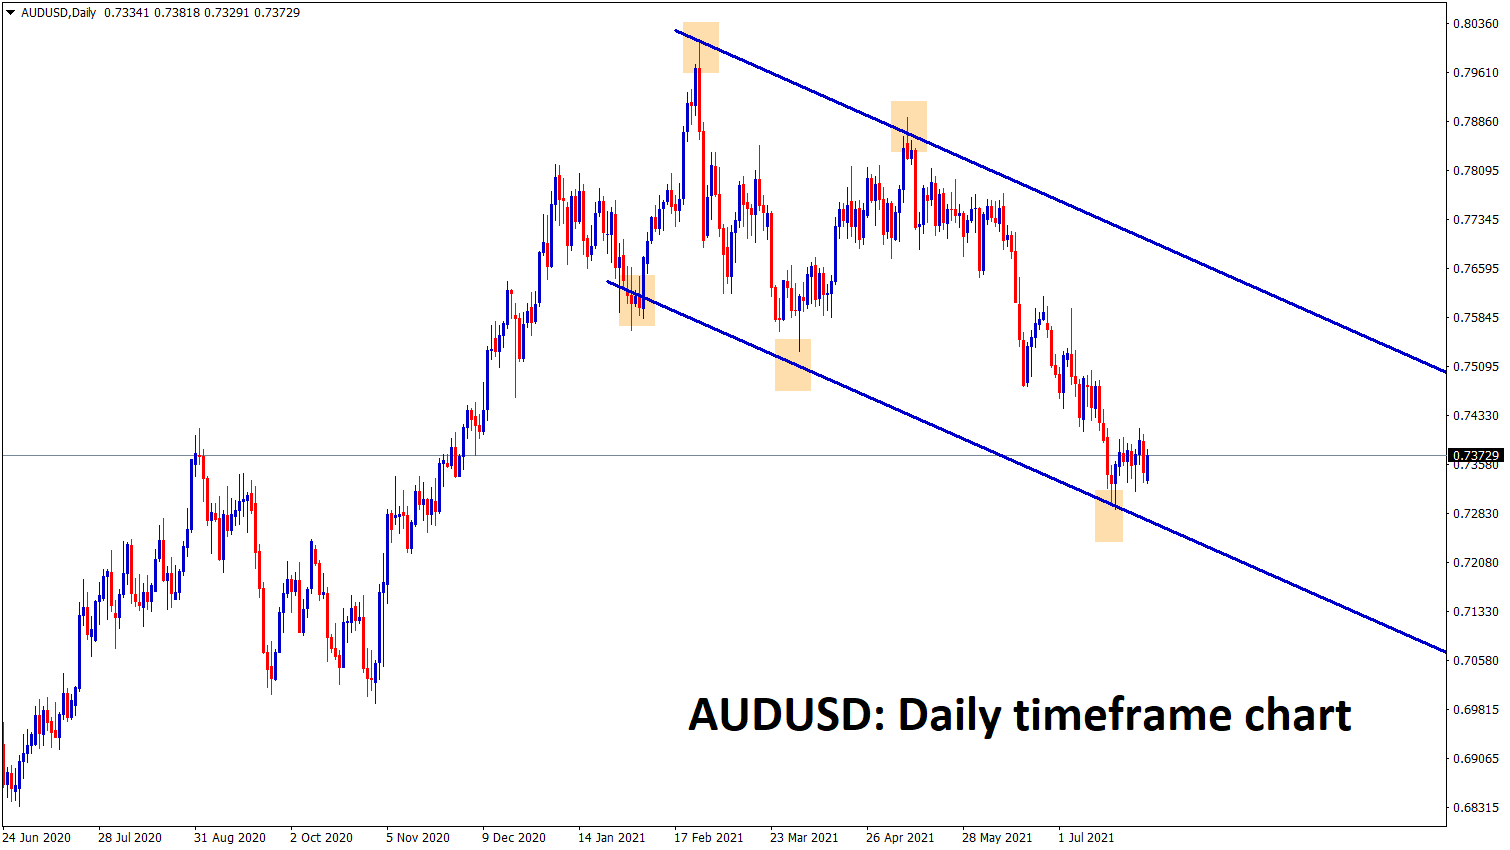 AUDUSD is consolidating at the lower low level of the descending channel